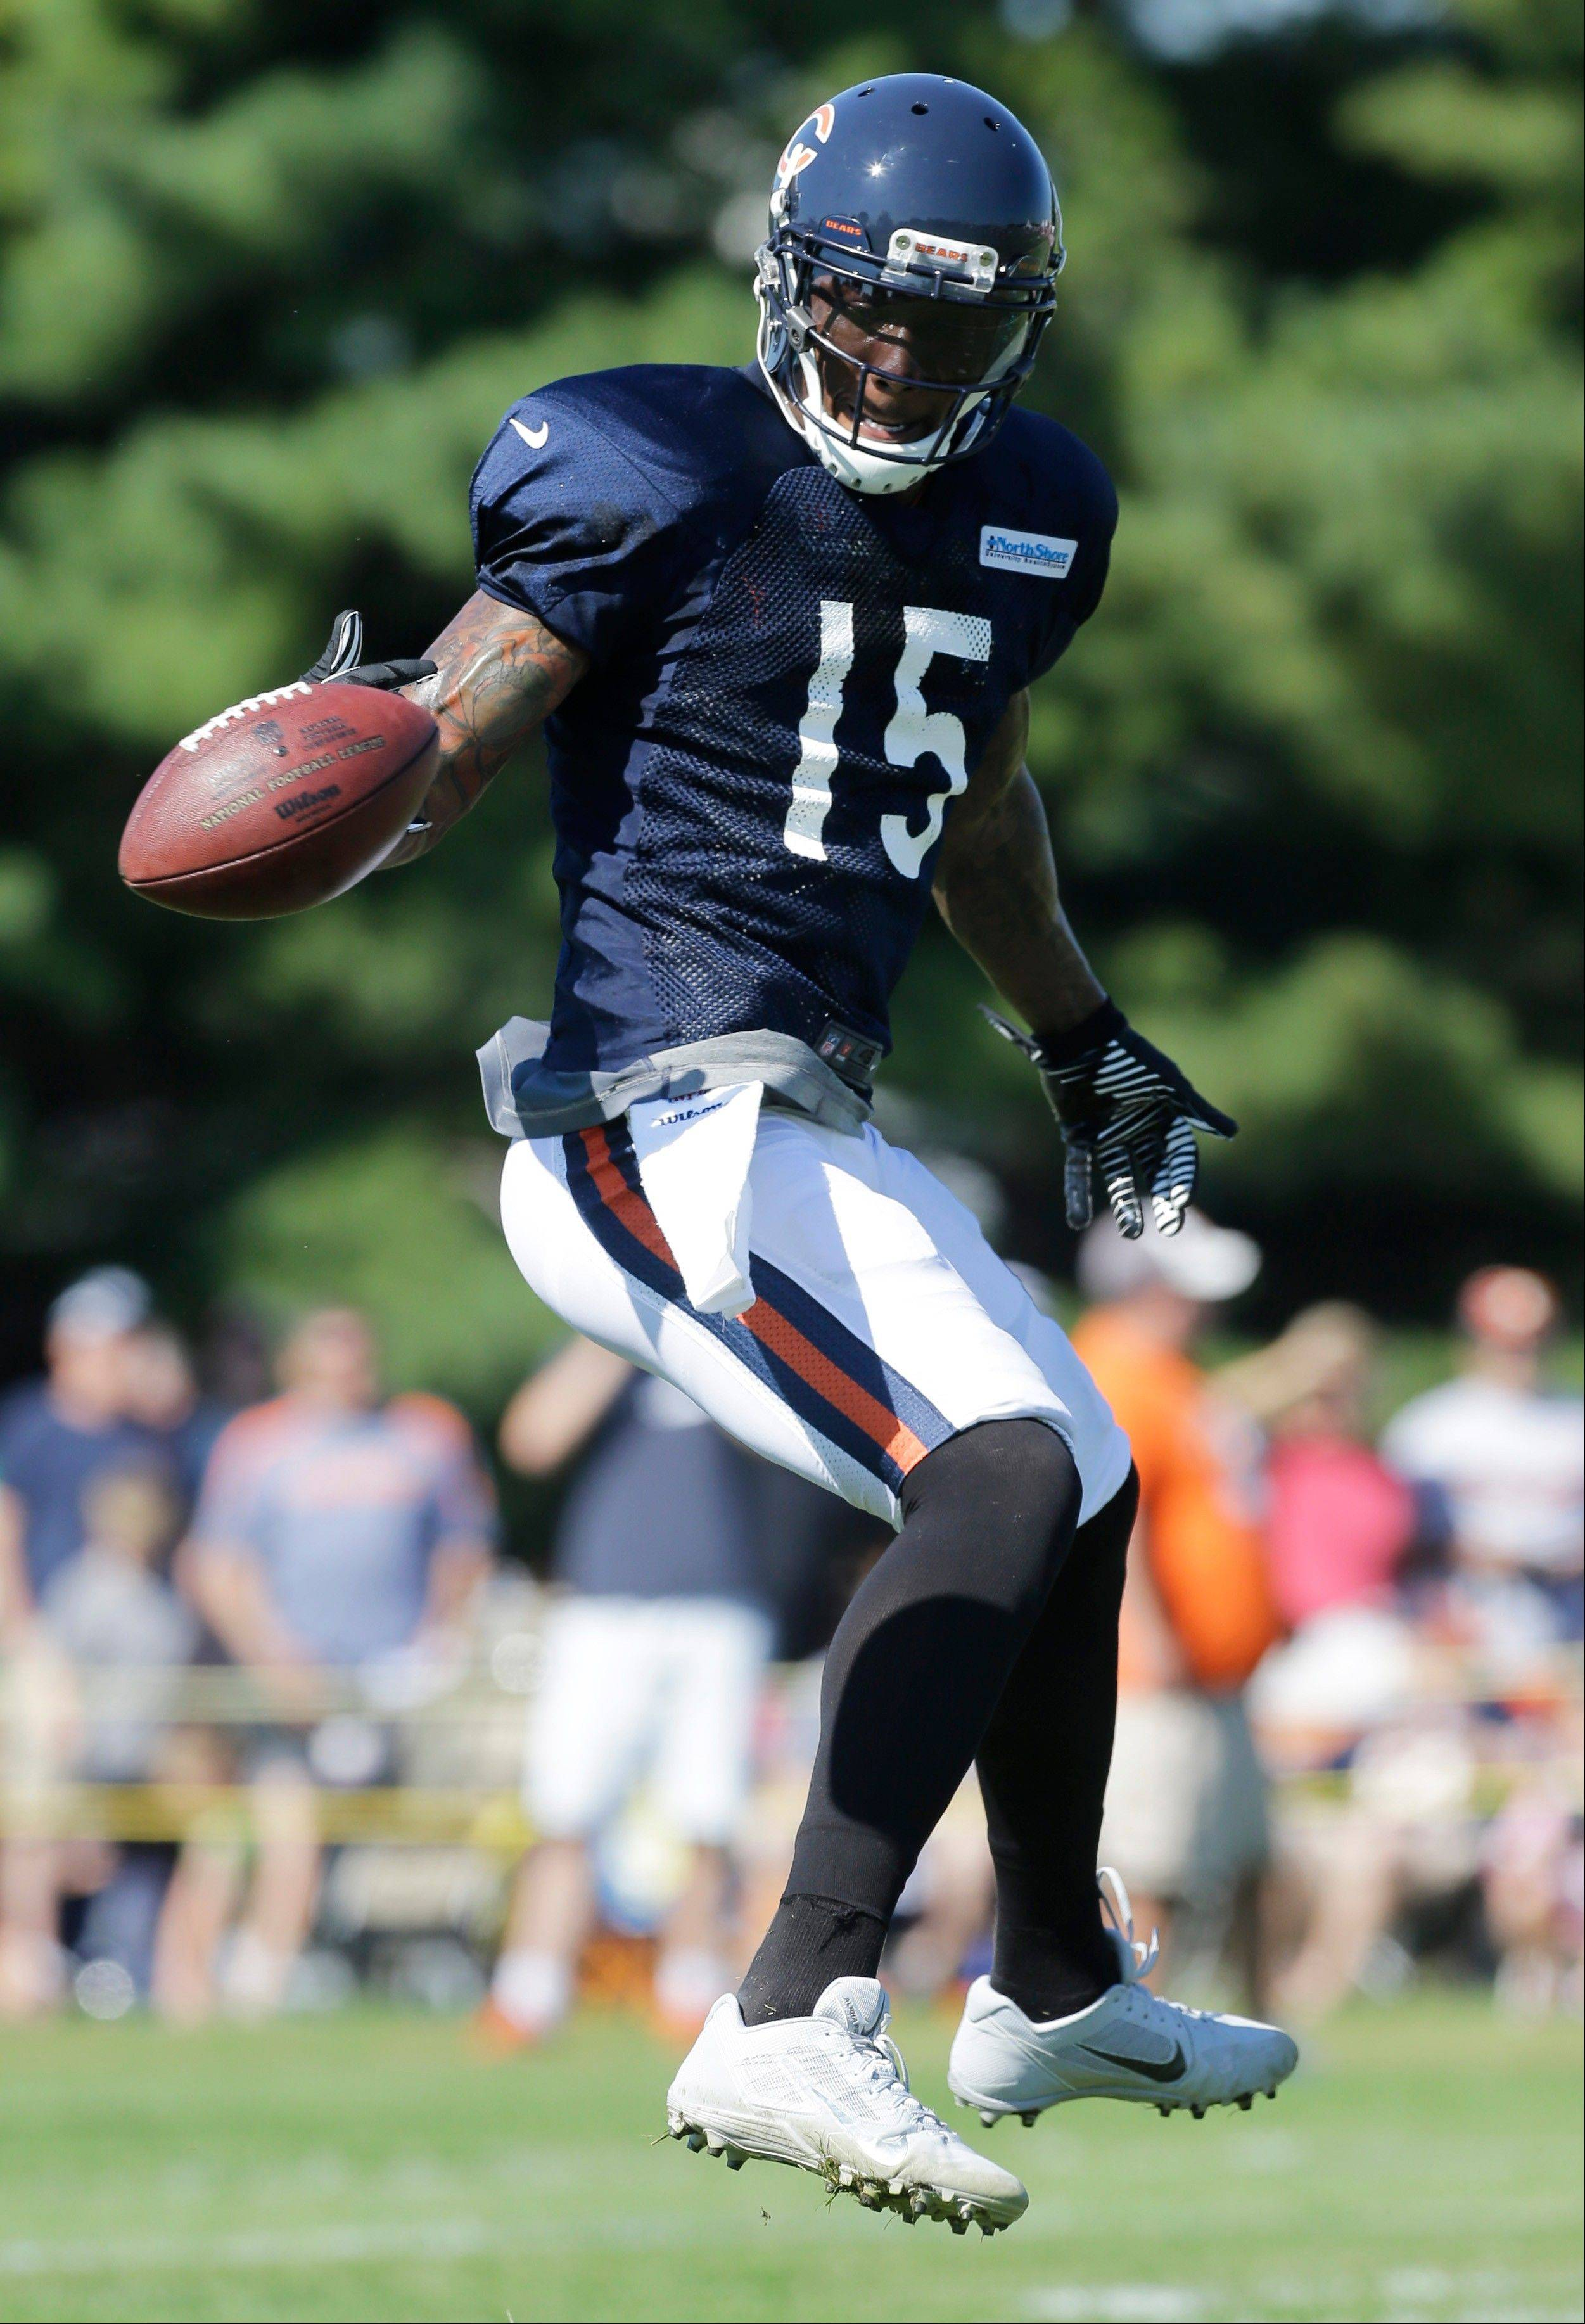 Bears wide receiver Brandon Marshall is not expected to return to practice until Monday. �It�s all good,� said Bears coach Marc Trestman. �I let him go for personal reasons,�